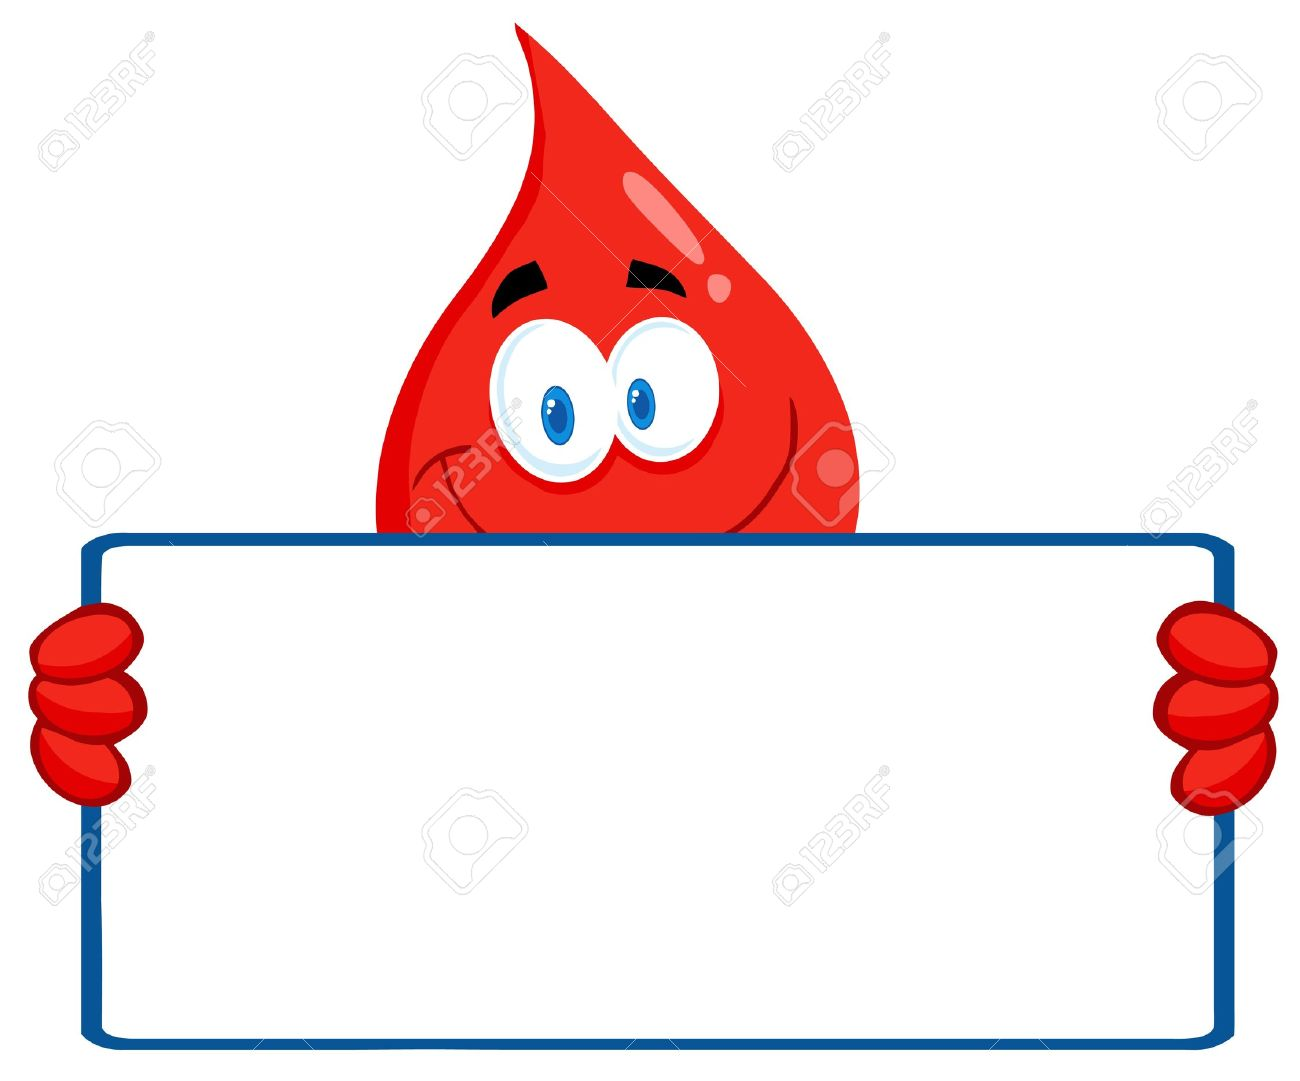 hight resolution of blood donation clipart 8